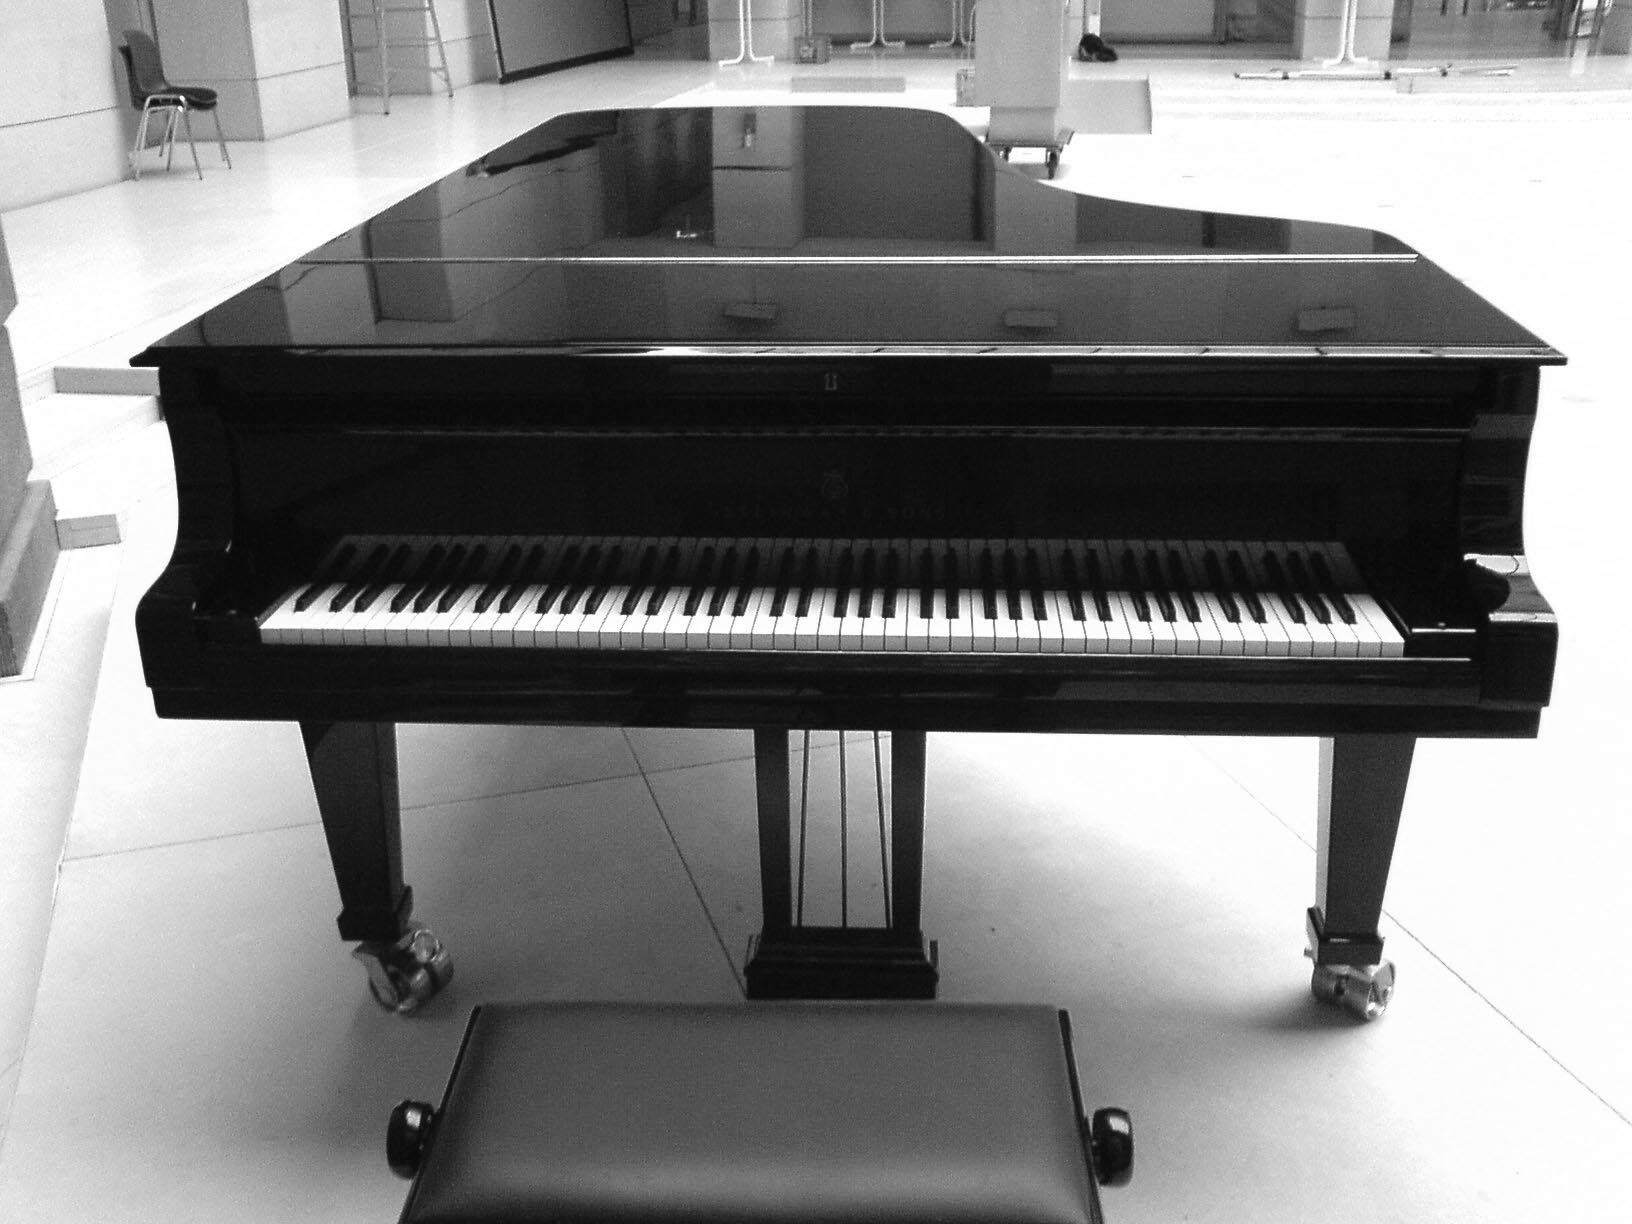 There are 88 keys on a piano and keys open G8's.